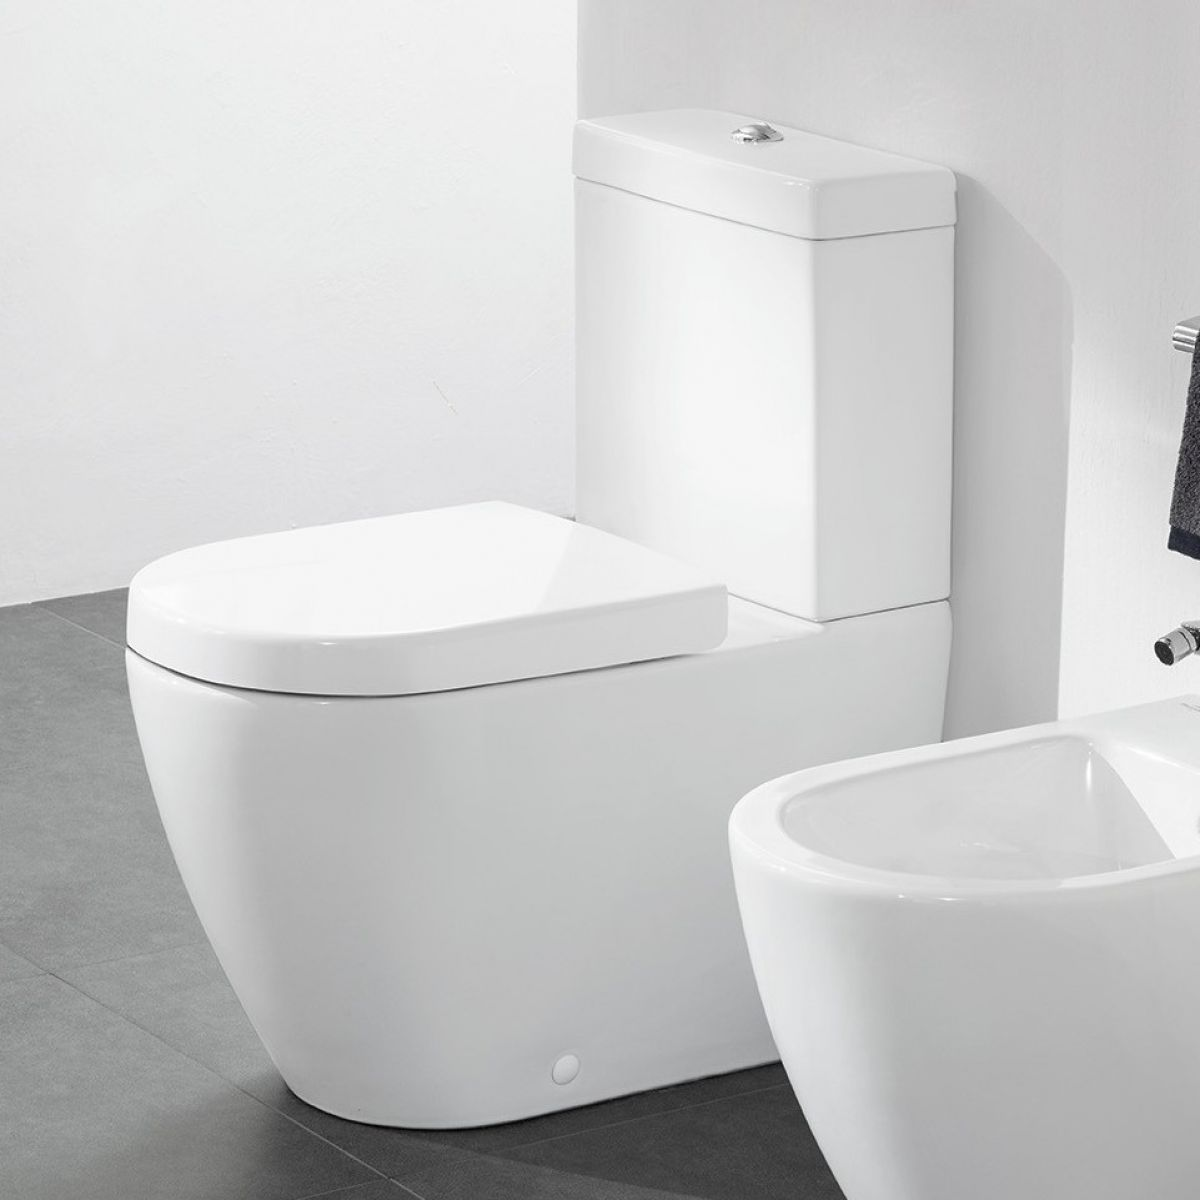 villeroy boch subway 2 0 rimless close coupled toilet. Black Bedroom Furniture Sets. Home Design Ideas